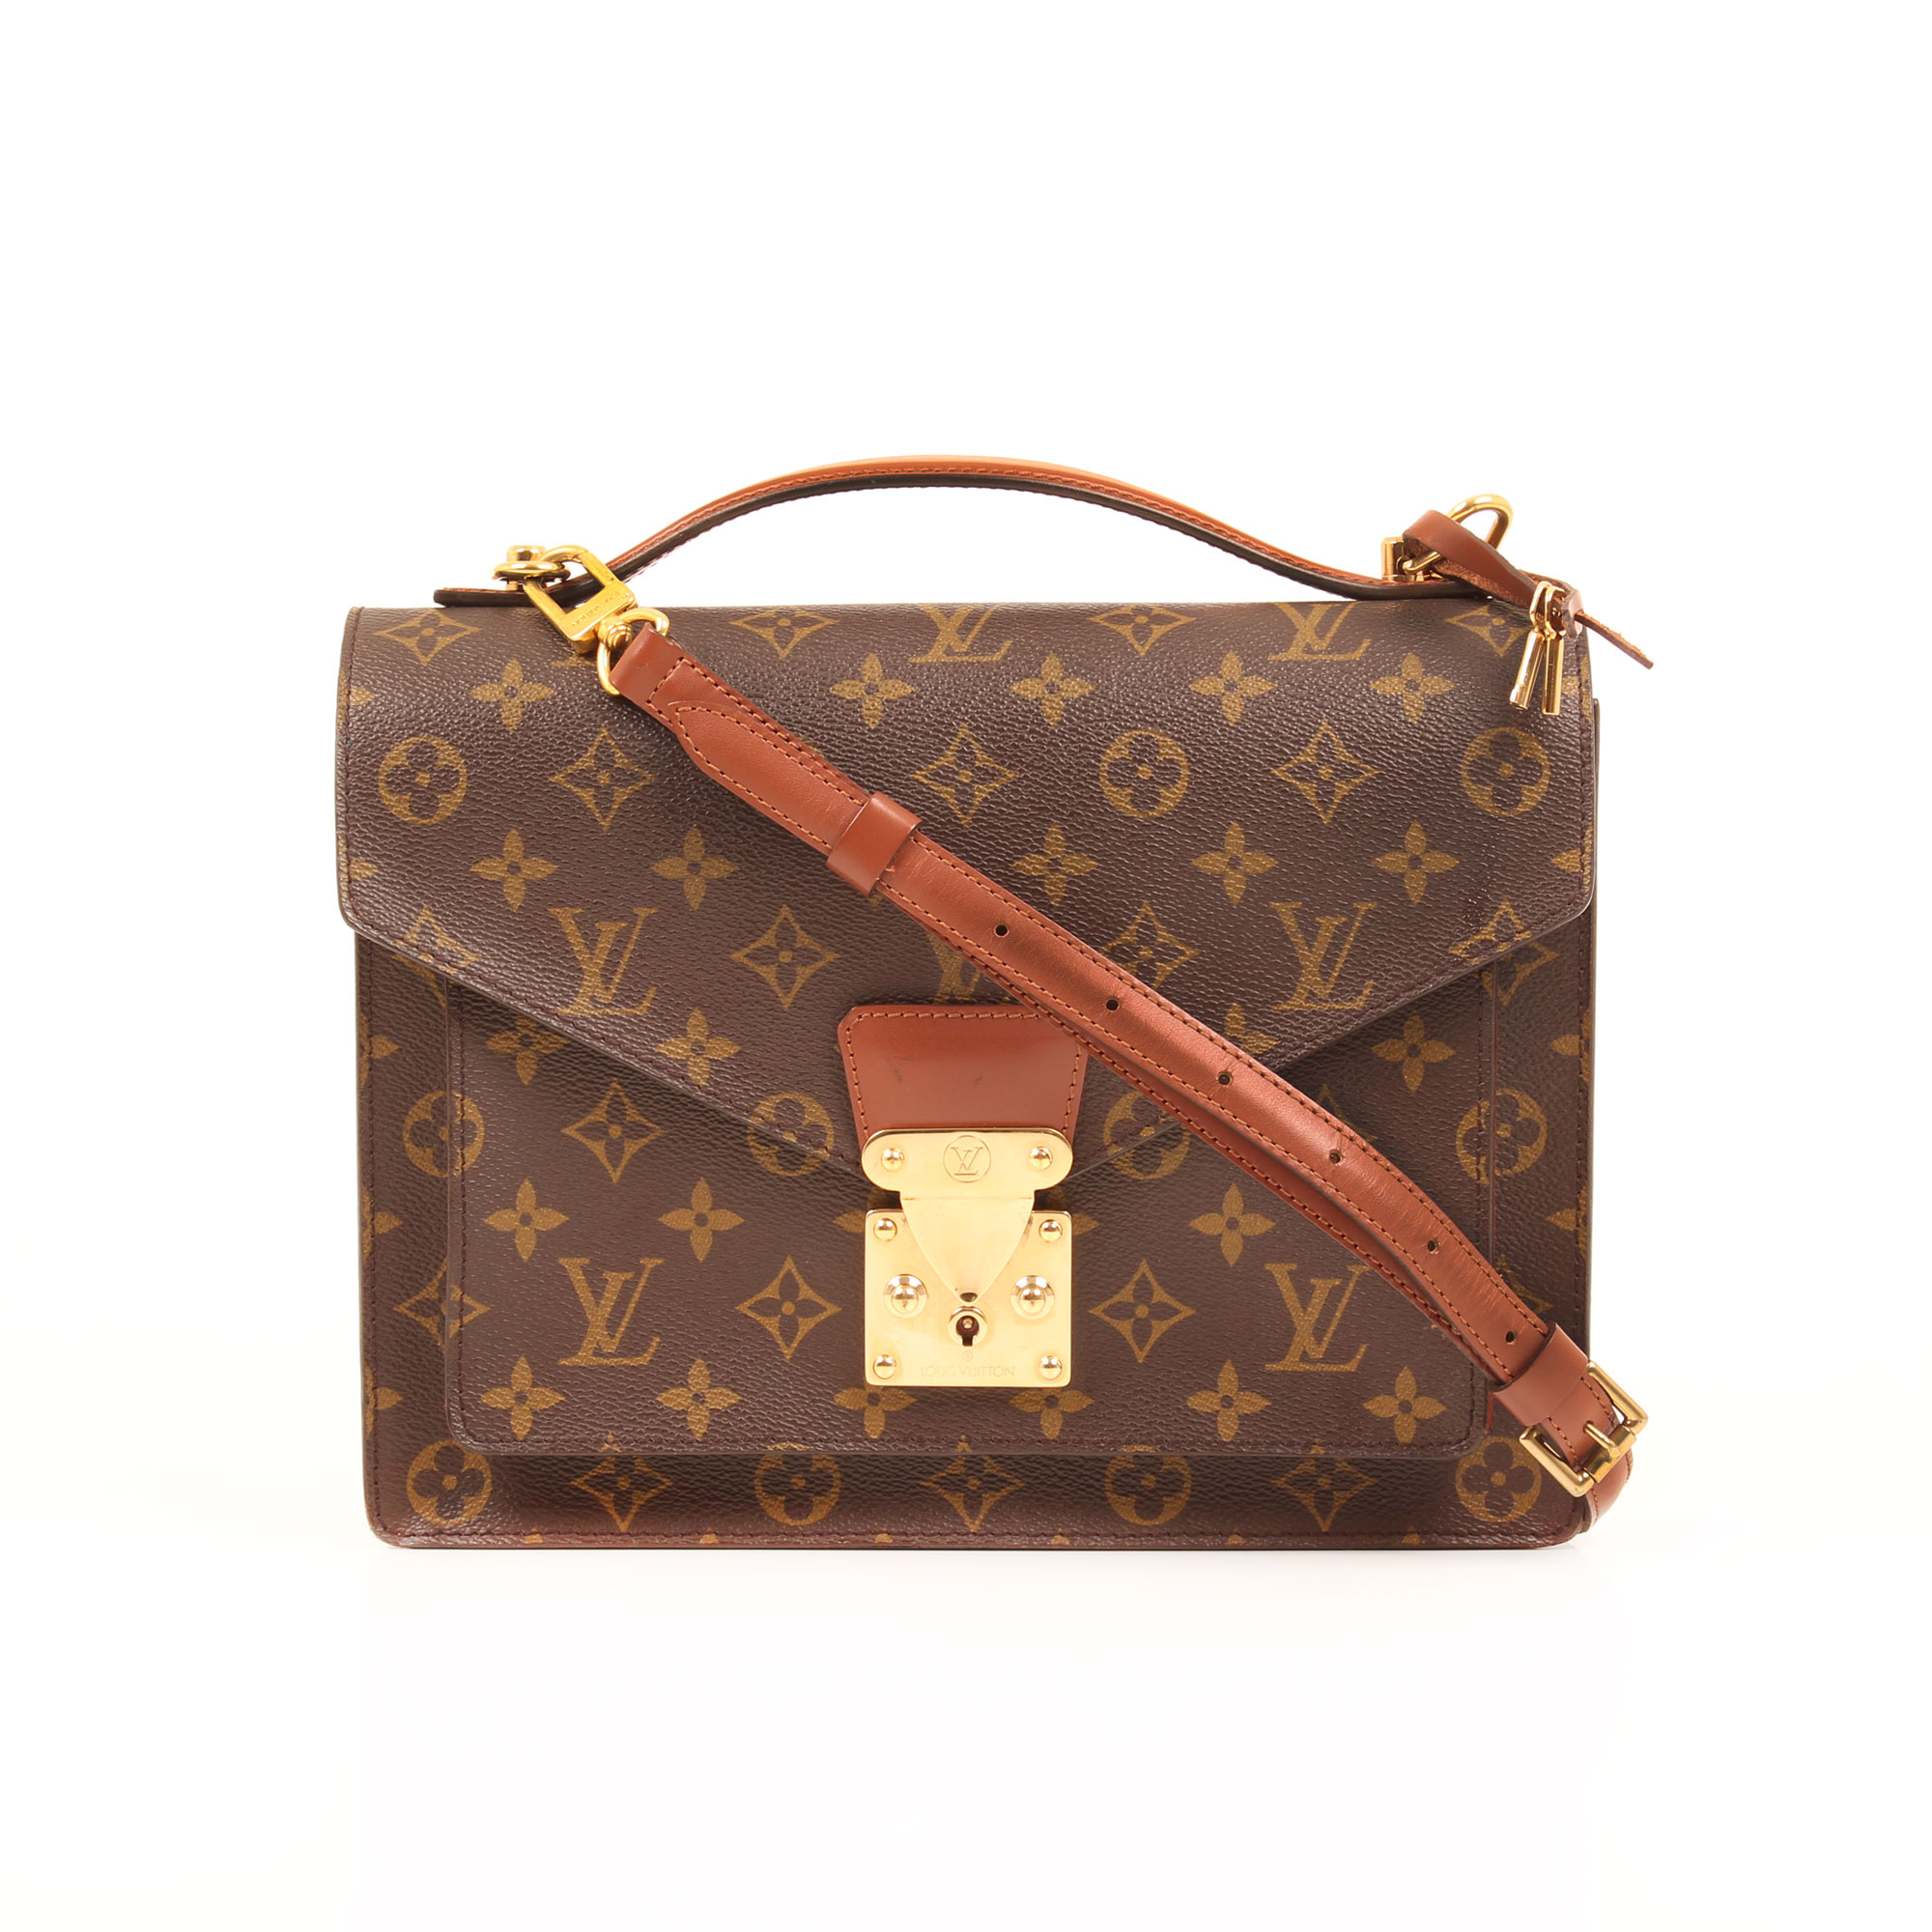 192145954a42 Front image of louis vuitton bag monceau 28 monogram strap